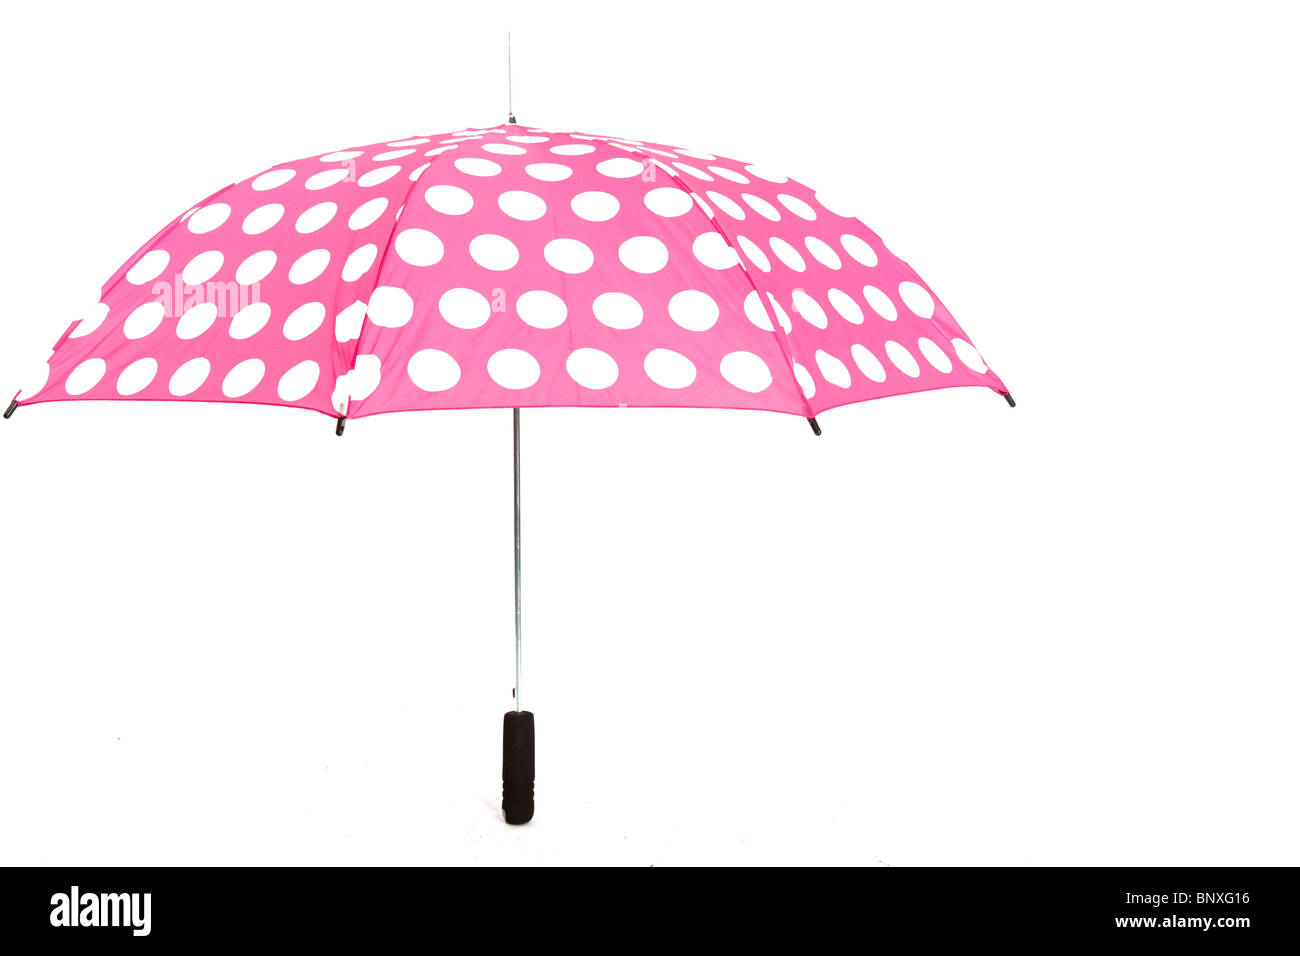 Pink Umbrella With White Spots on White Isolated Background - Stock Image